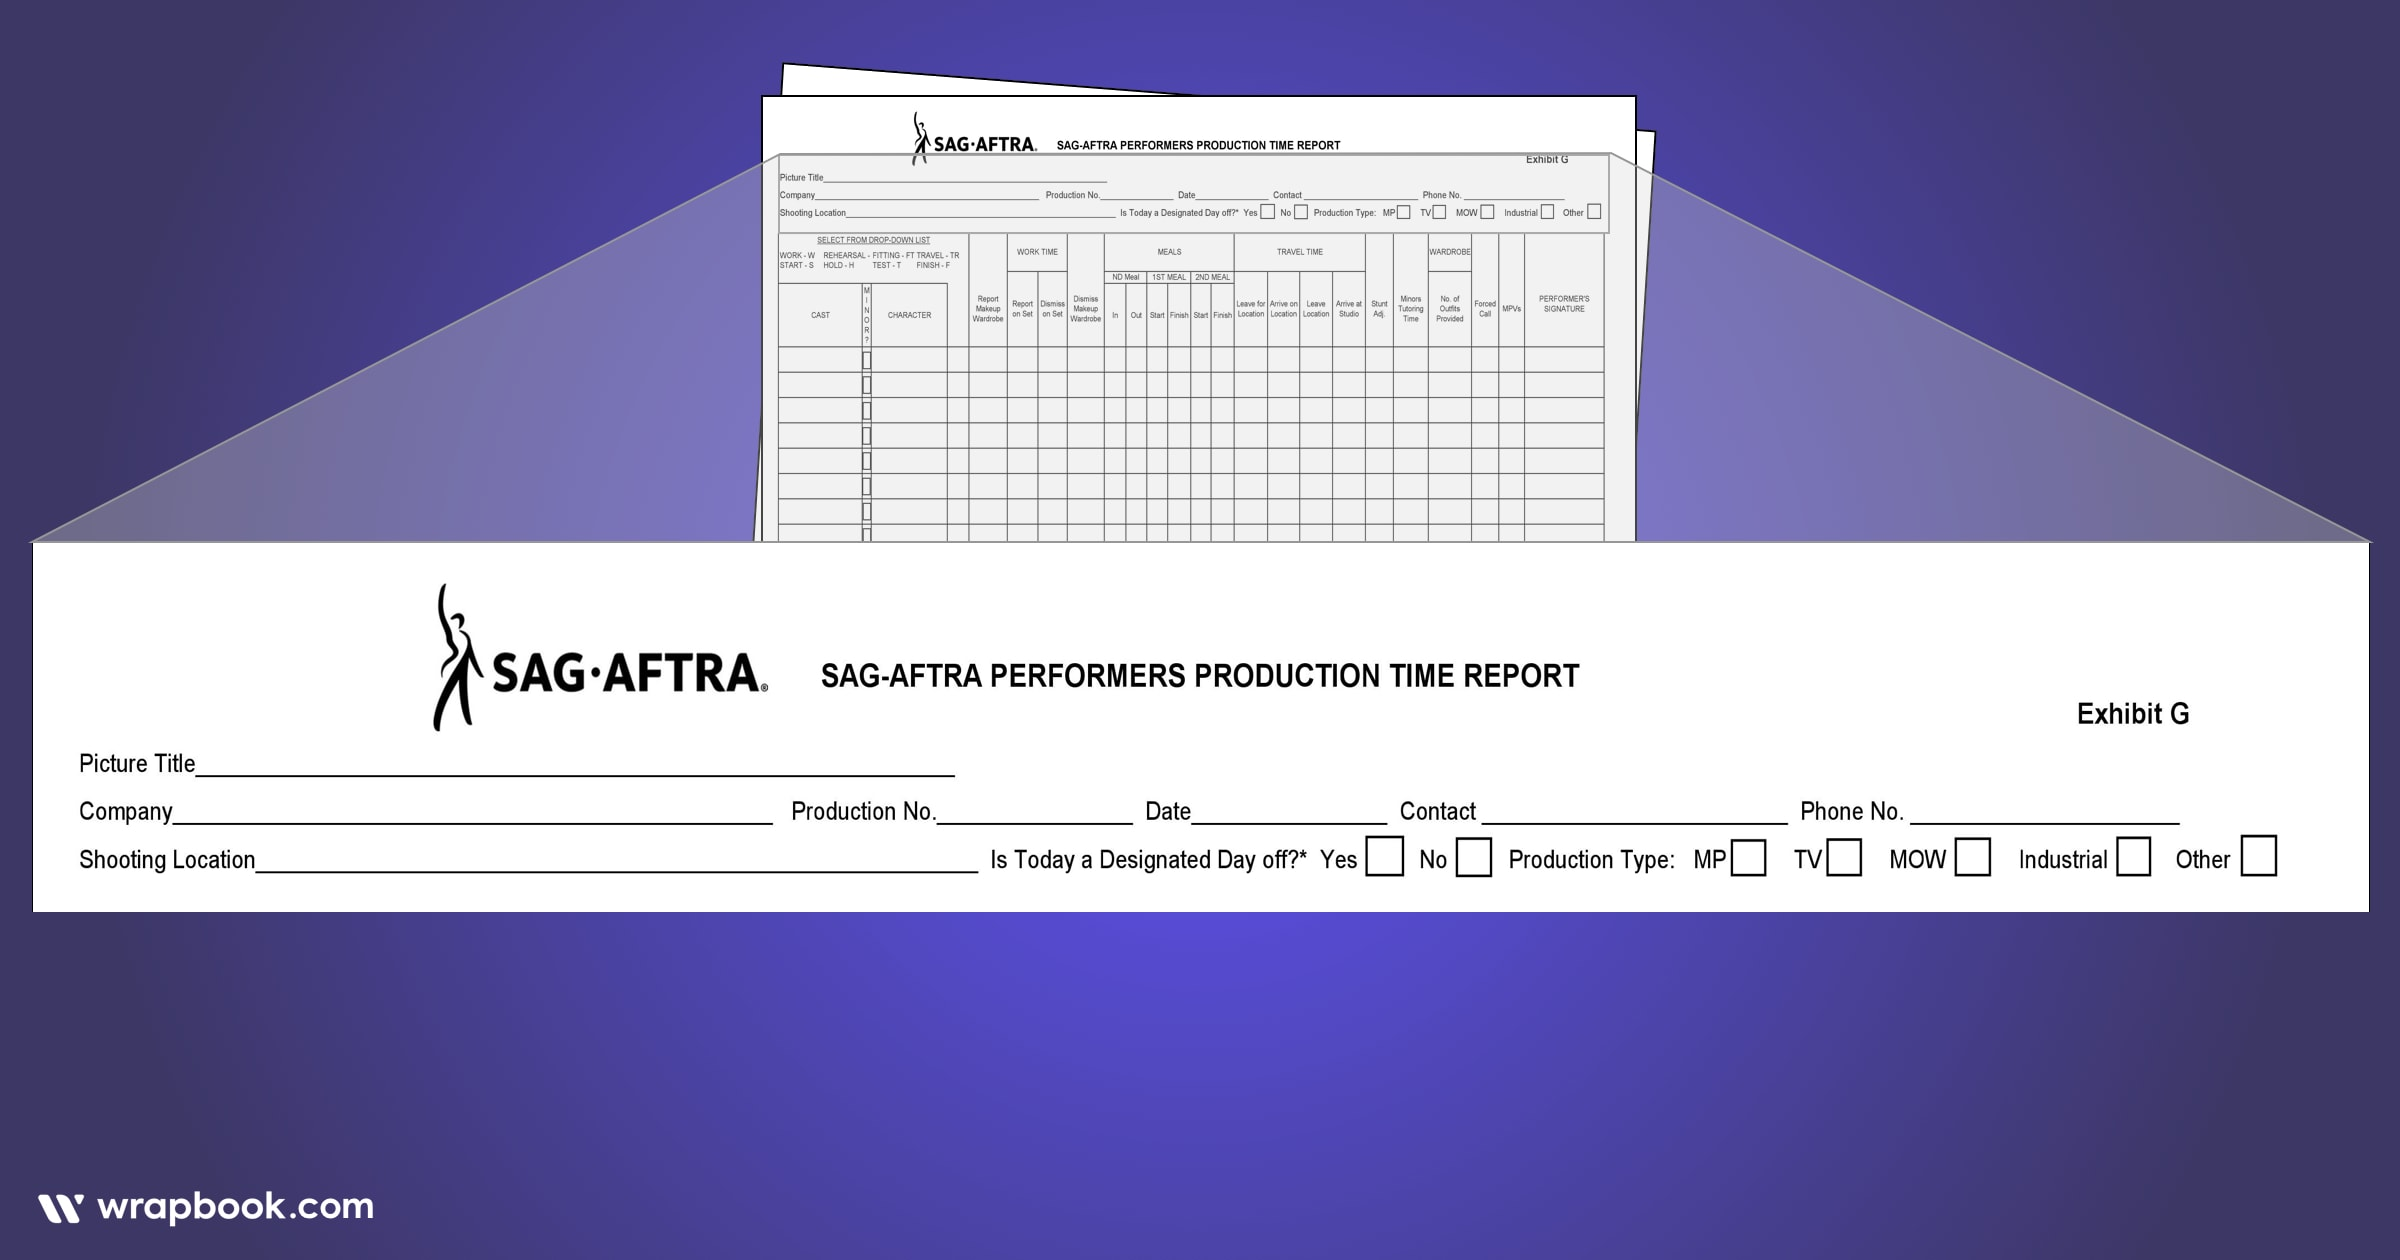 You can fill out most of this before each shoot day - How to Fill Out The SAG Exhibit G Form